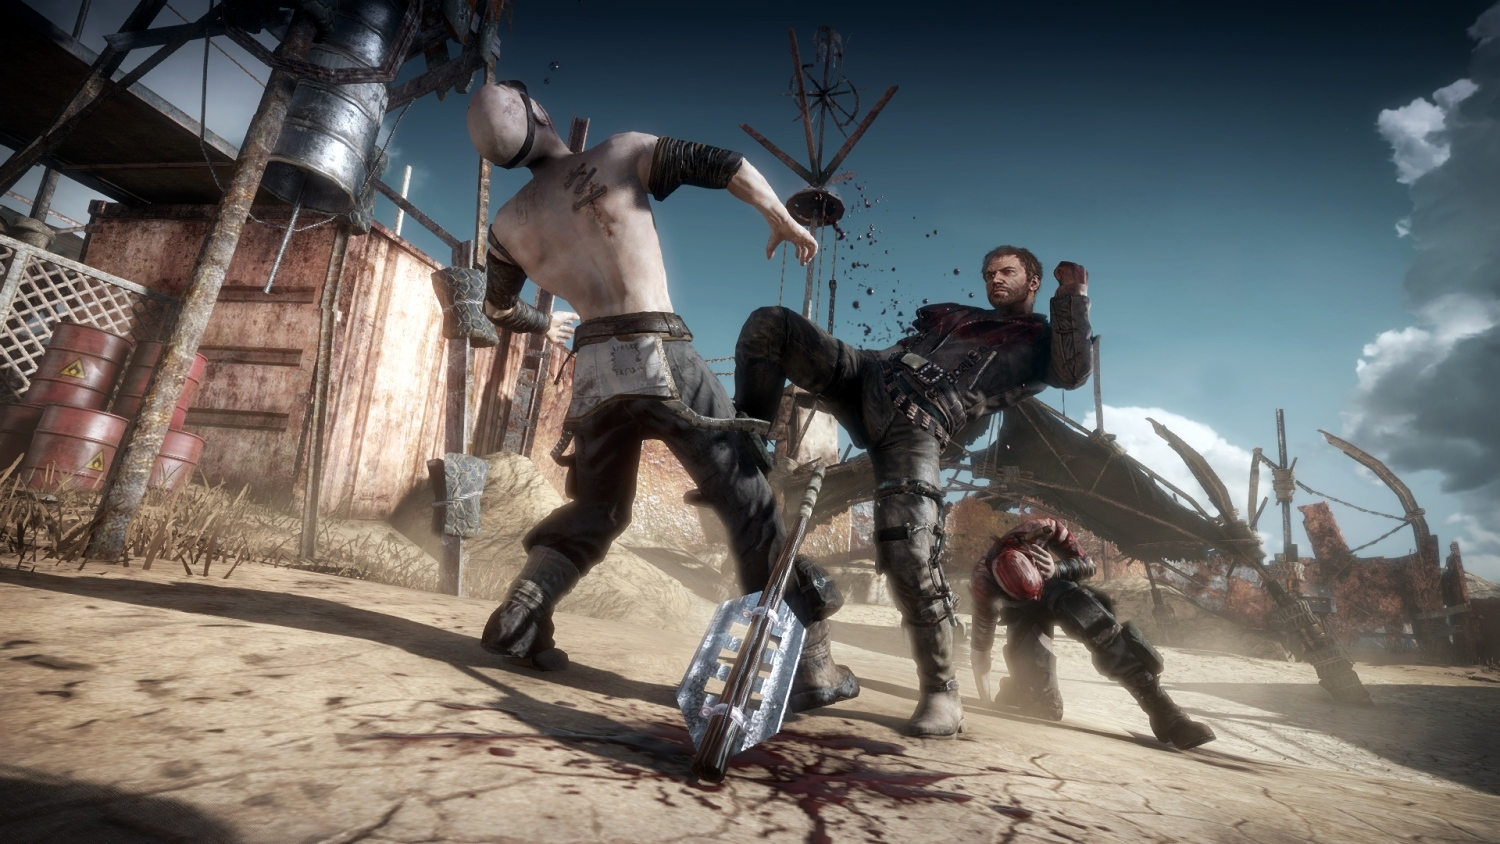 The Mad Max Video Game Is In Its Very Design Anti Fun The Verge